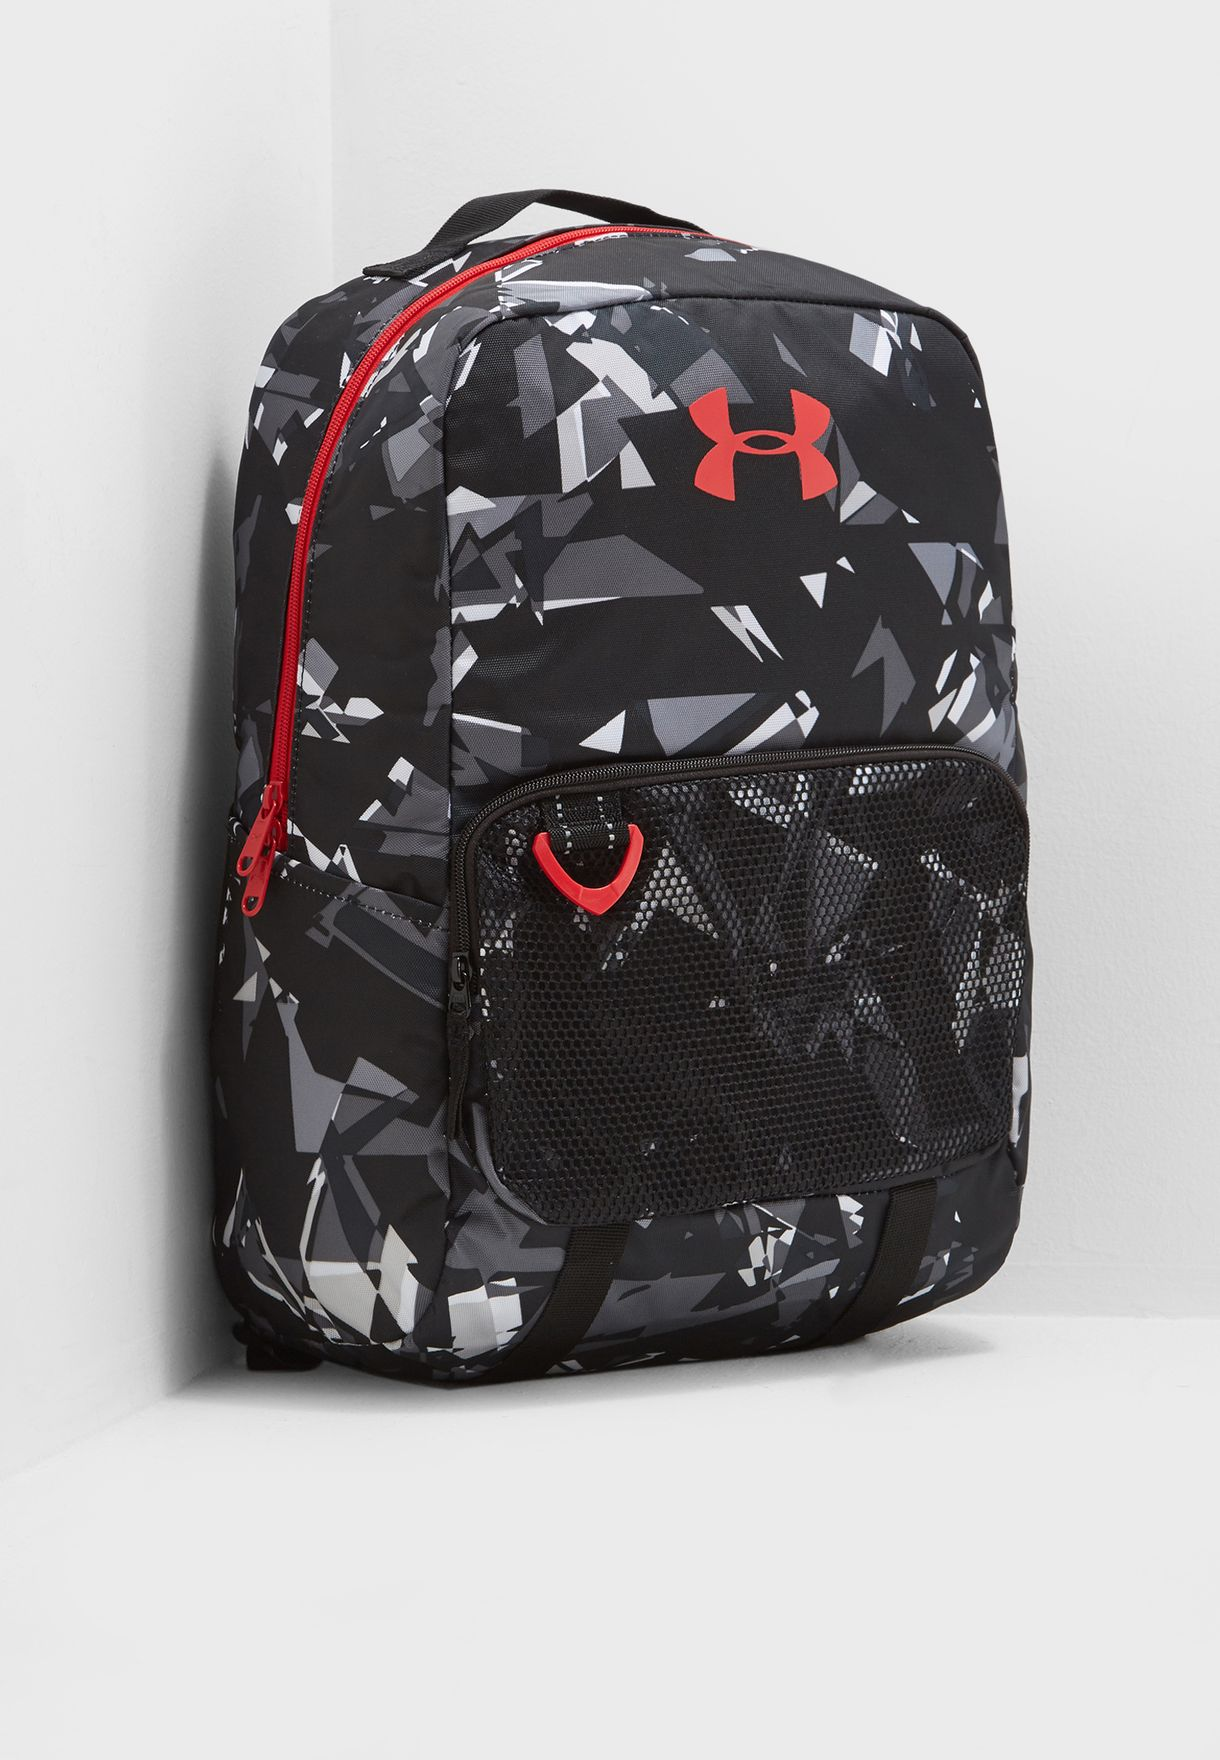 477d706d58 Shop Under Armour prints Select Backpack 1308765-101 for Kids in UAE ...